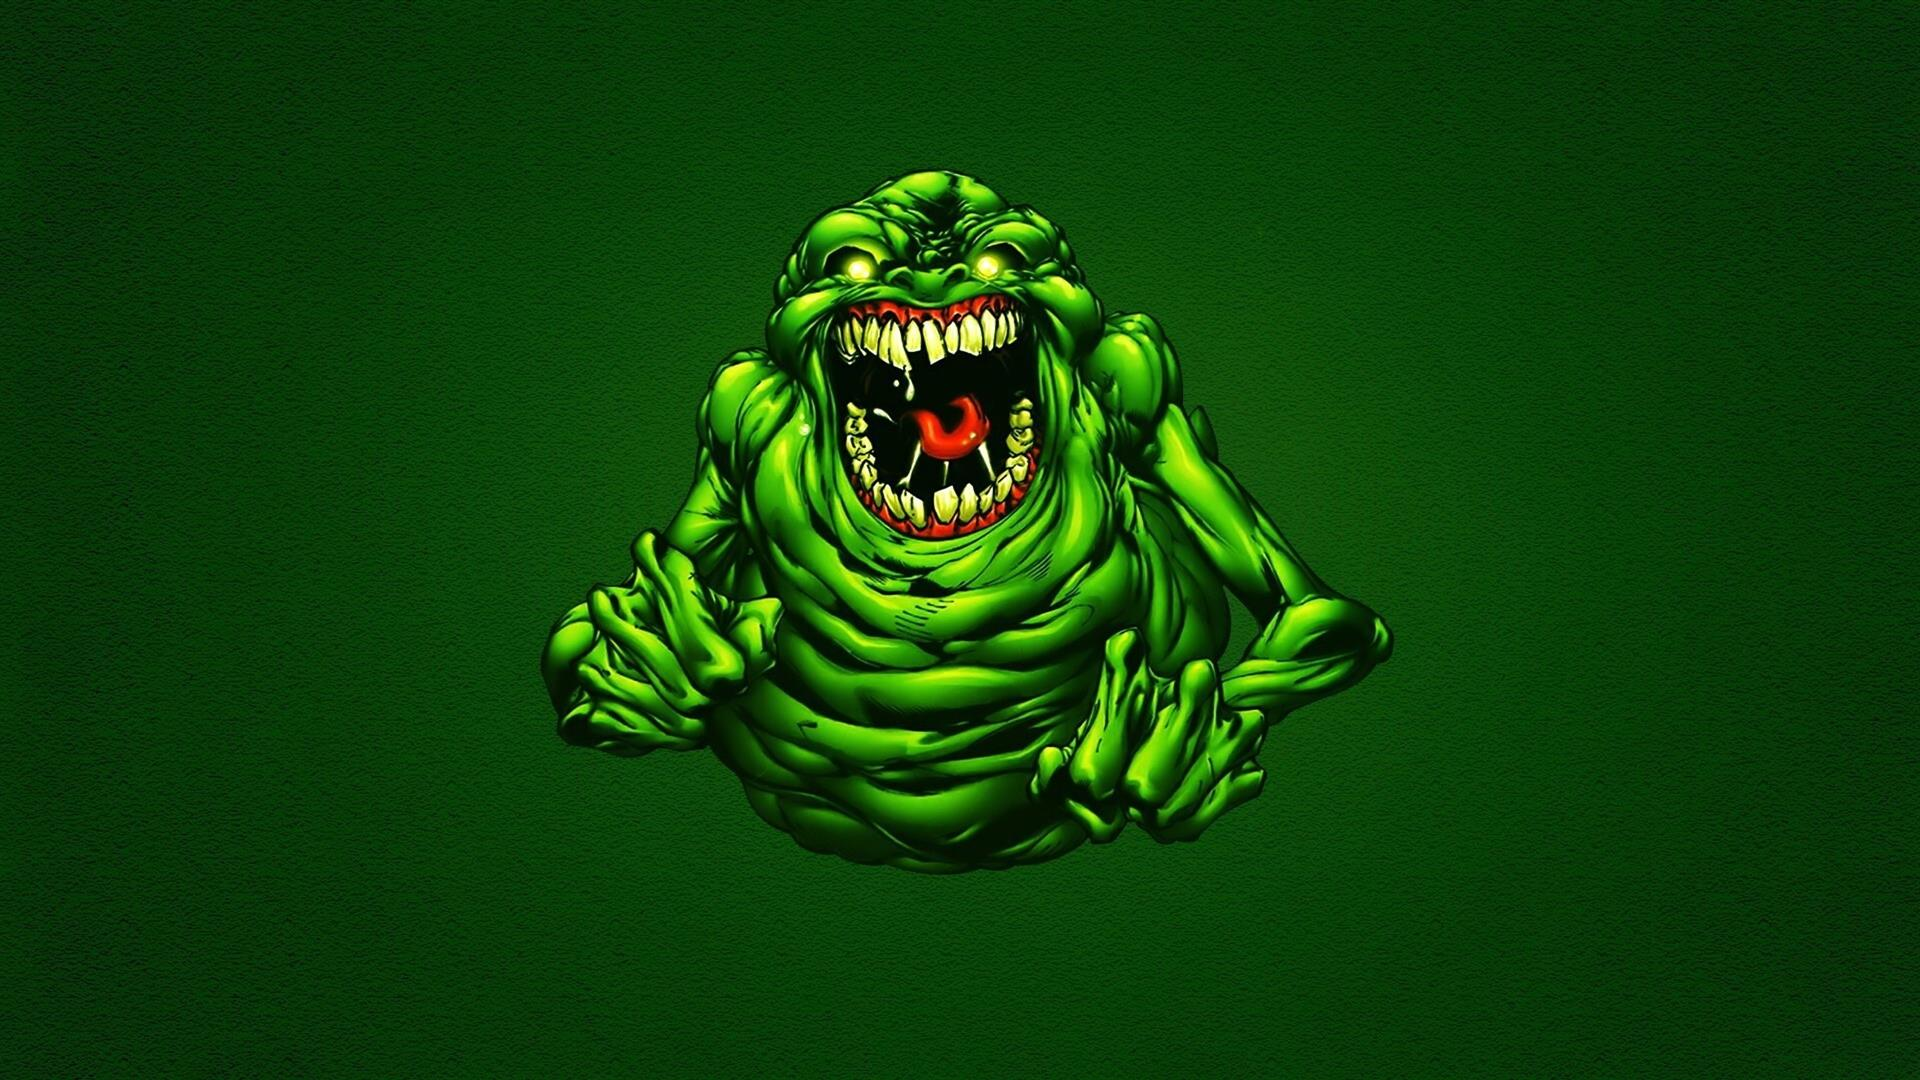 1920x1080 Funny Green Ghostbusters Slimer Wallpapers